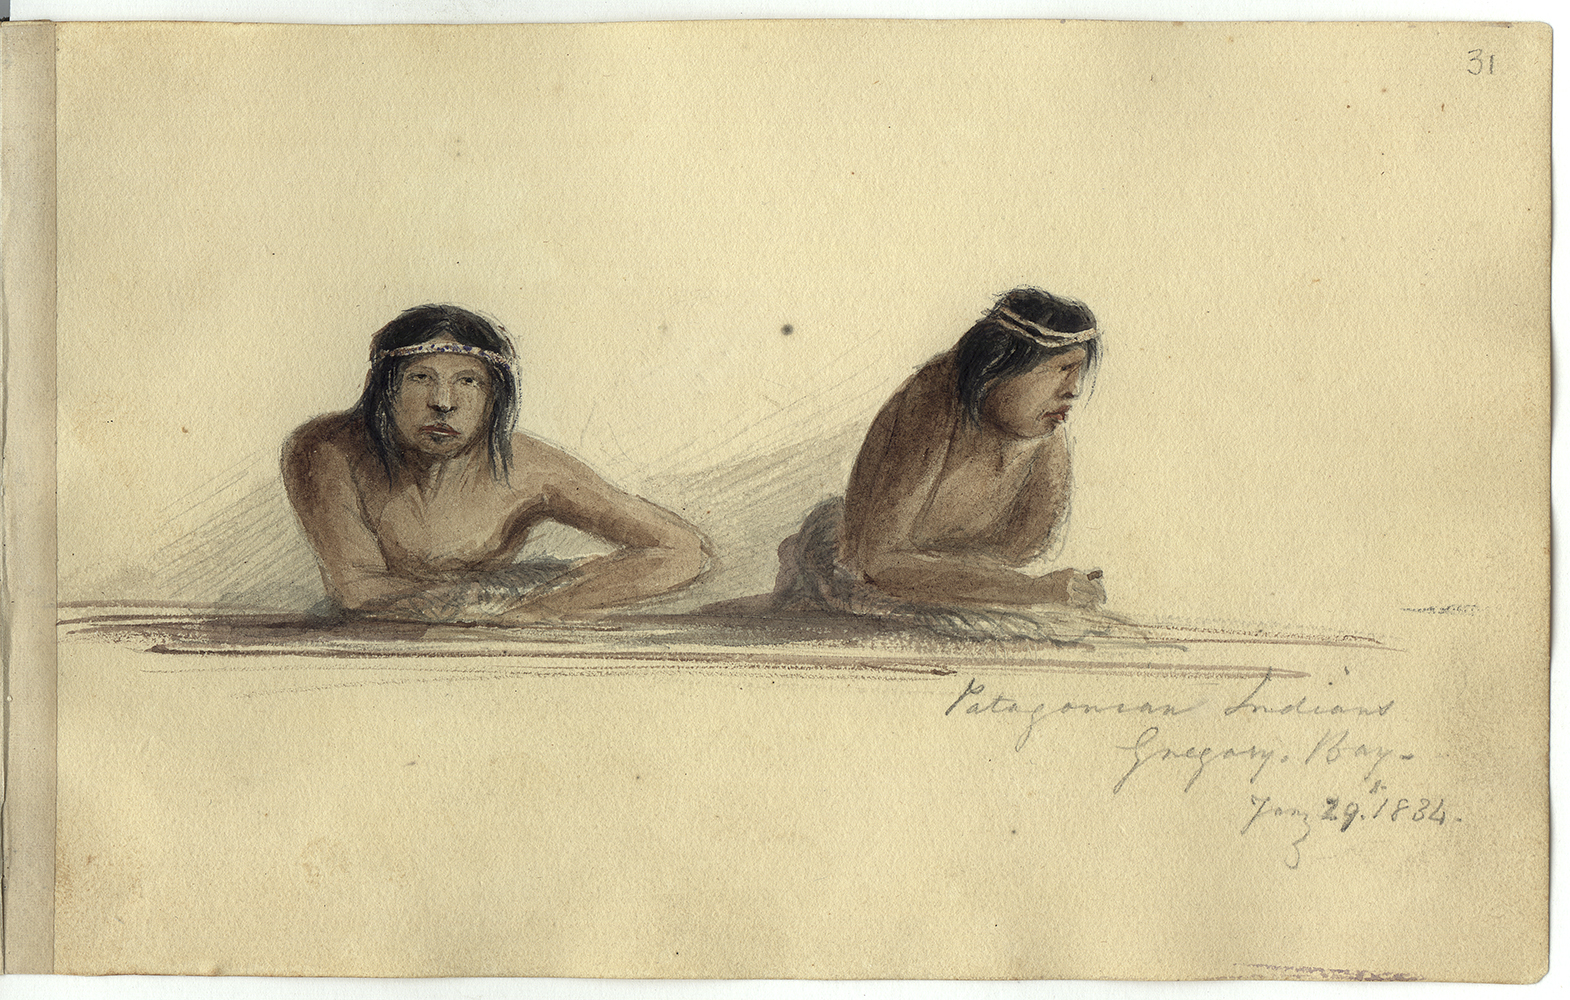 Patagonian Indians, Gregory Bay